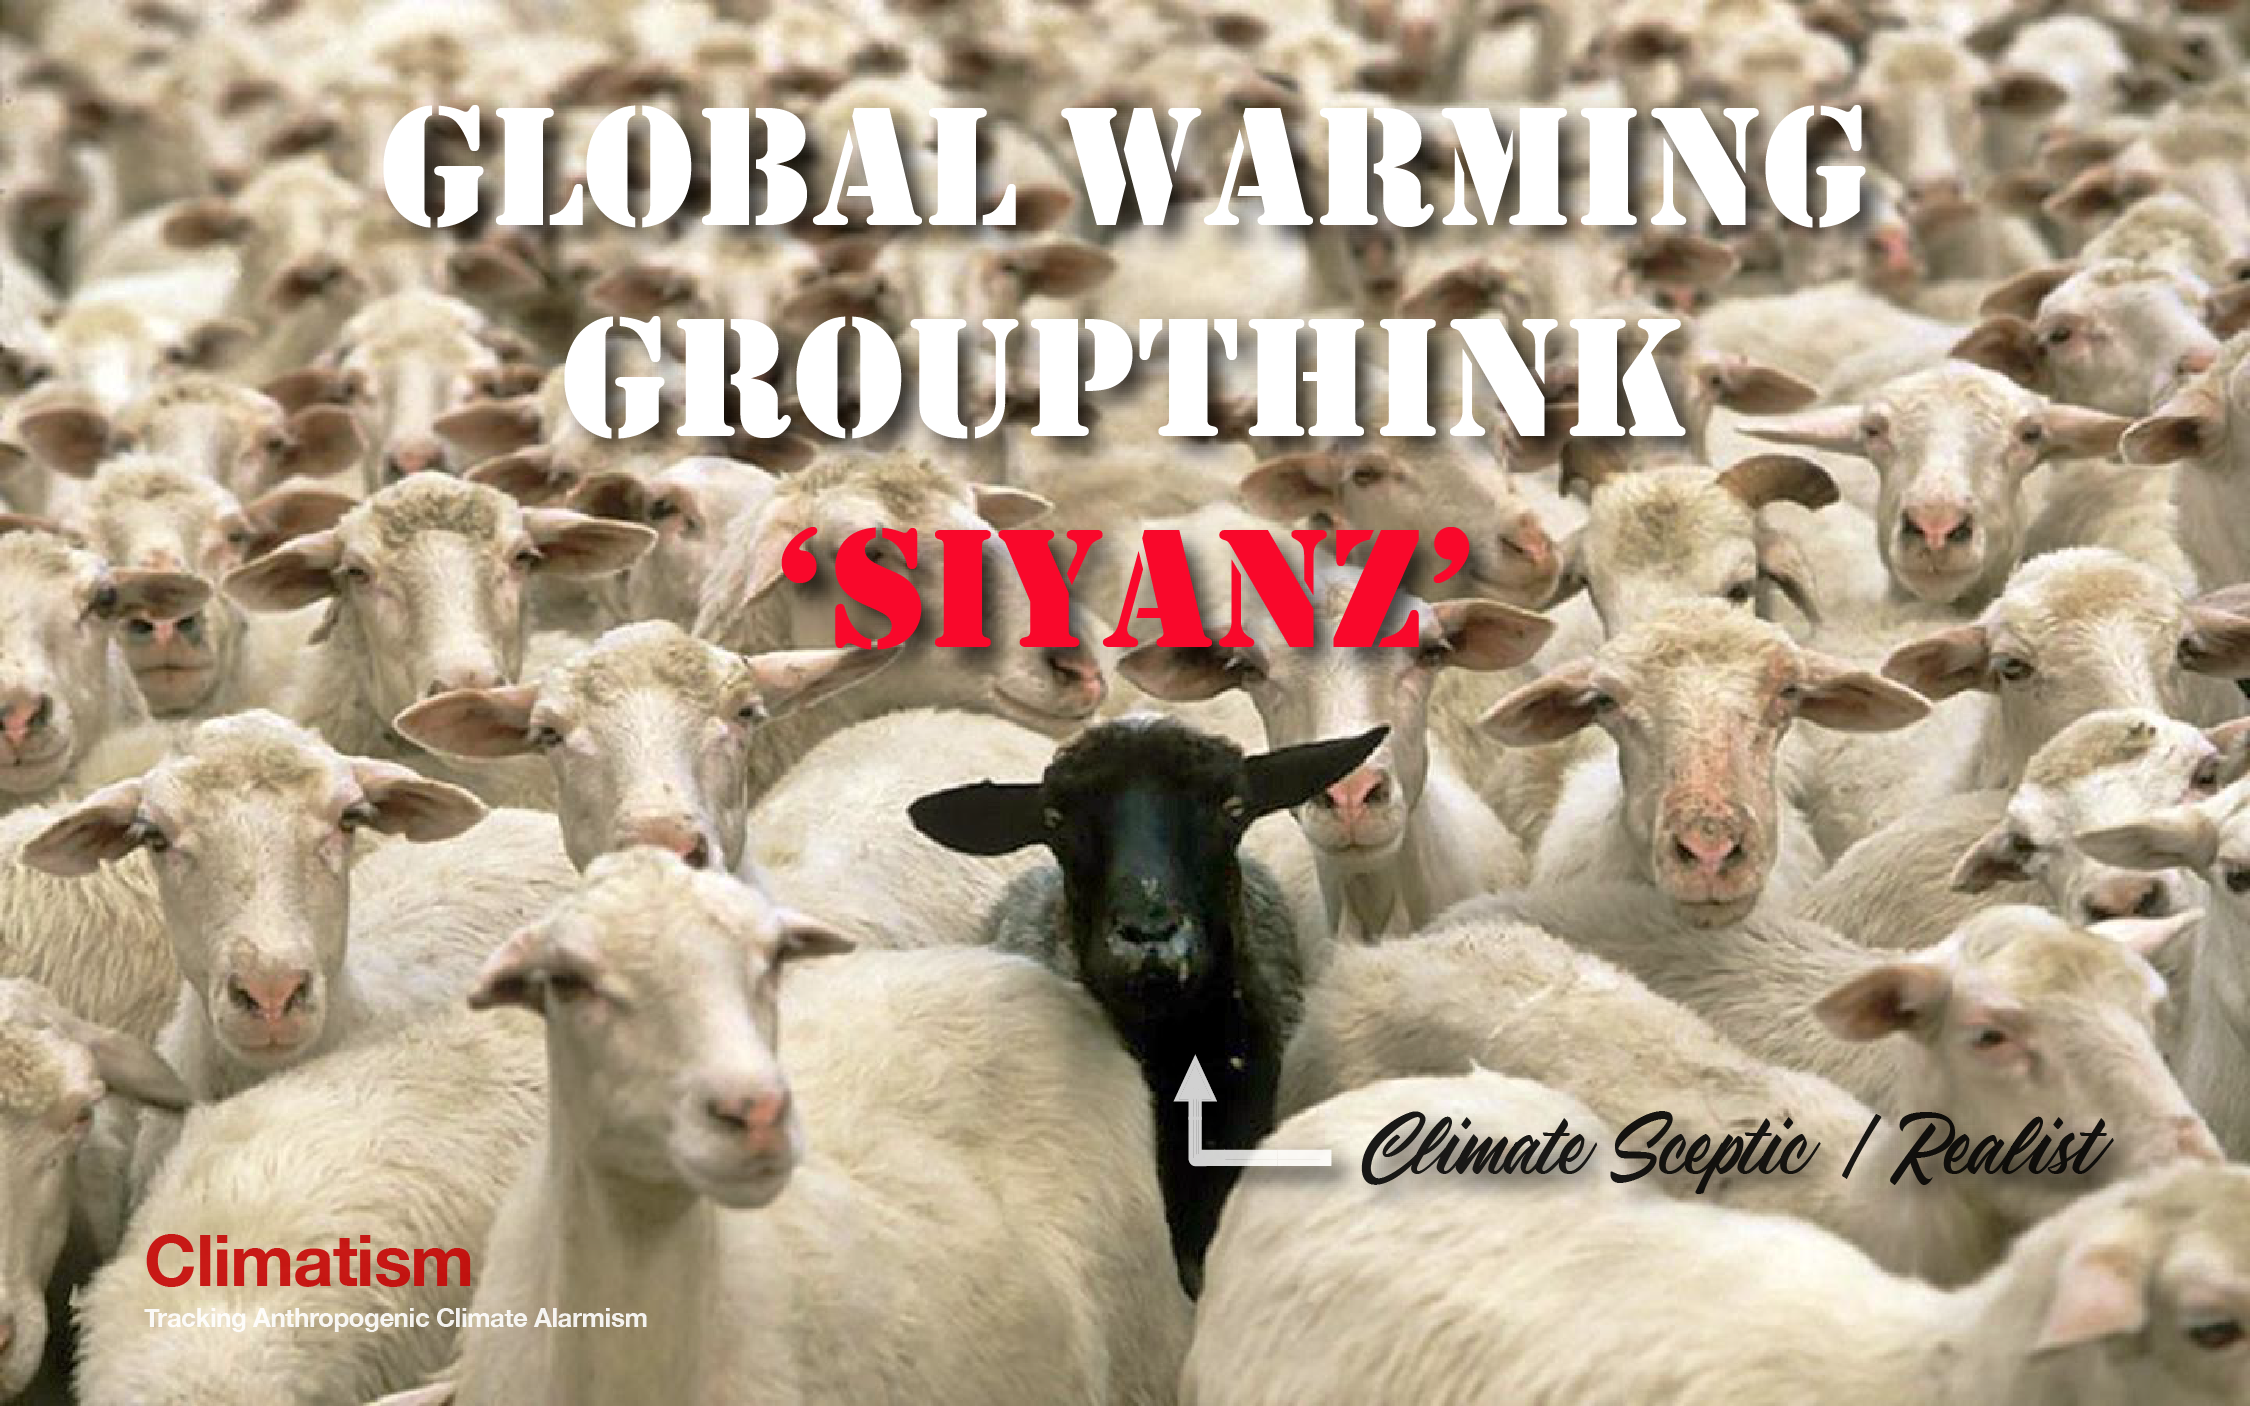 GLOBAL WARMING GROUPTHINK SHEEP - CLIMATISM